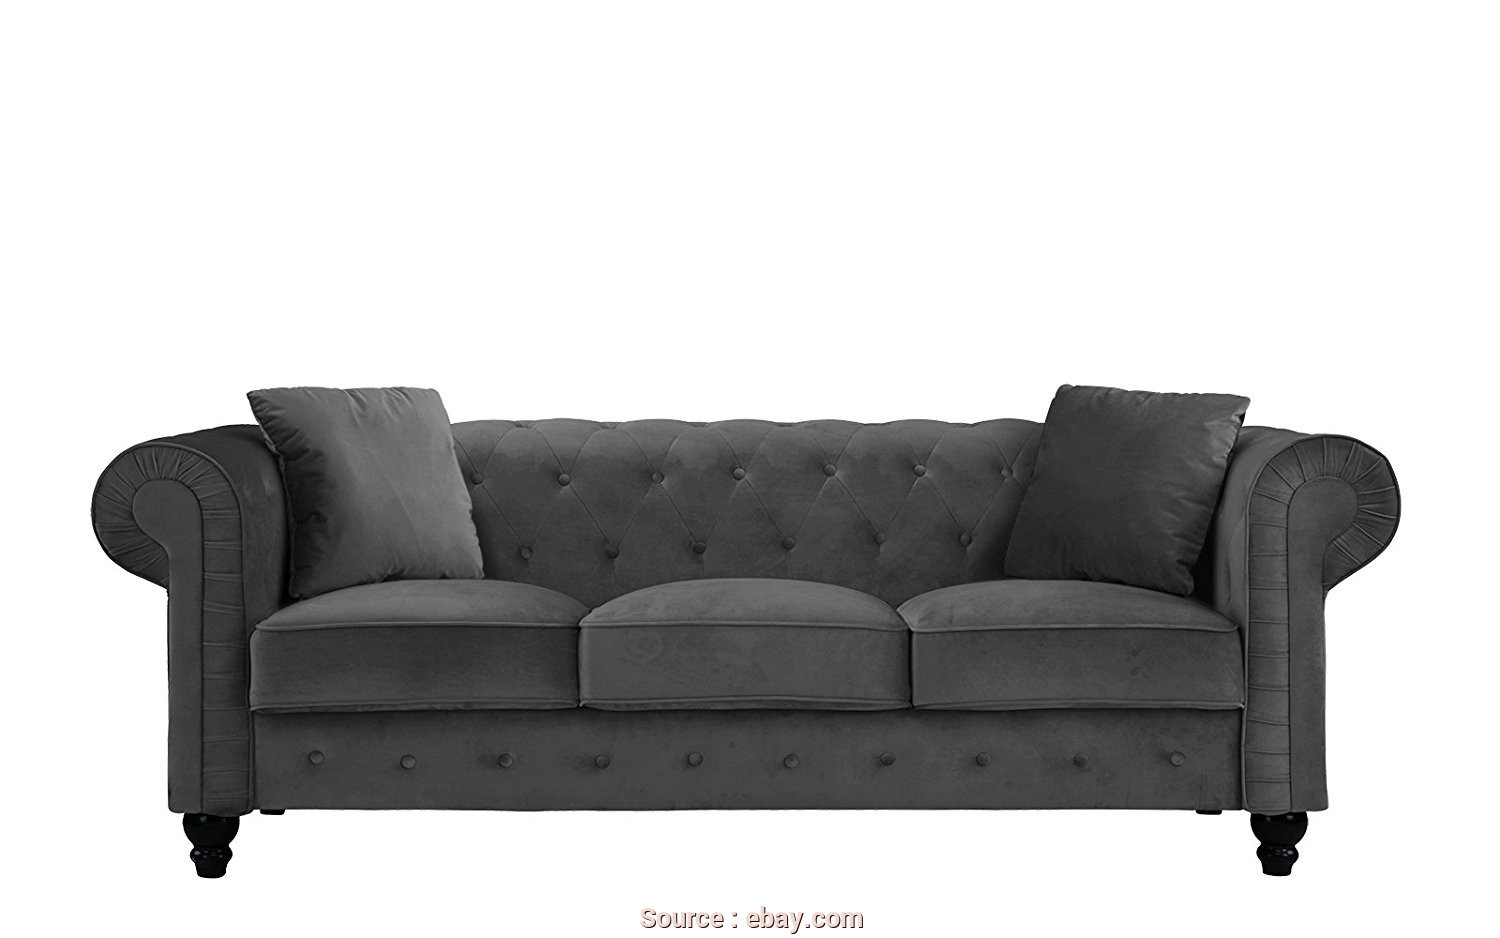 Chesterfield Divano, Bellissima Details About Divano Roma Furniture Classic Velvet Scroll, Tufted Button Chesterfield